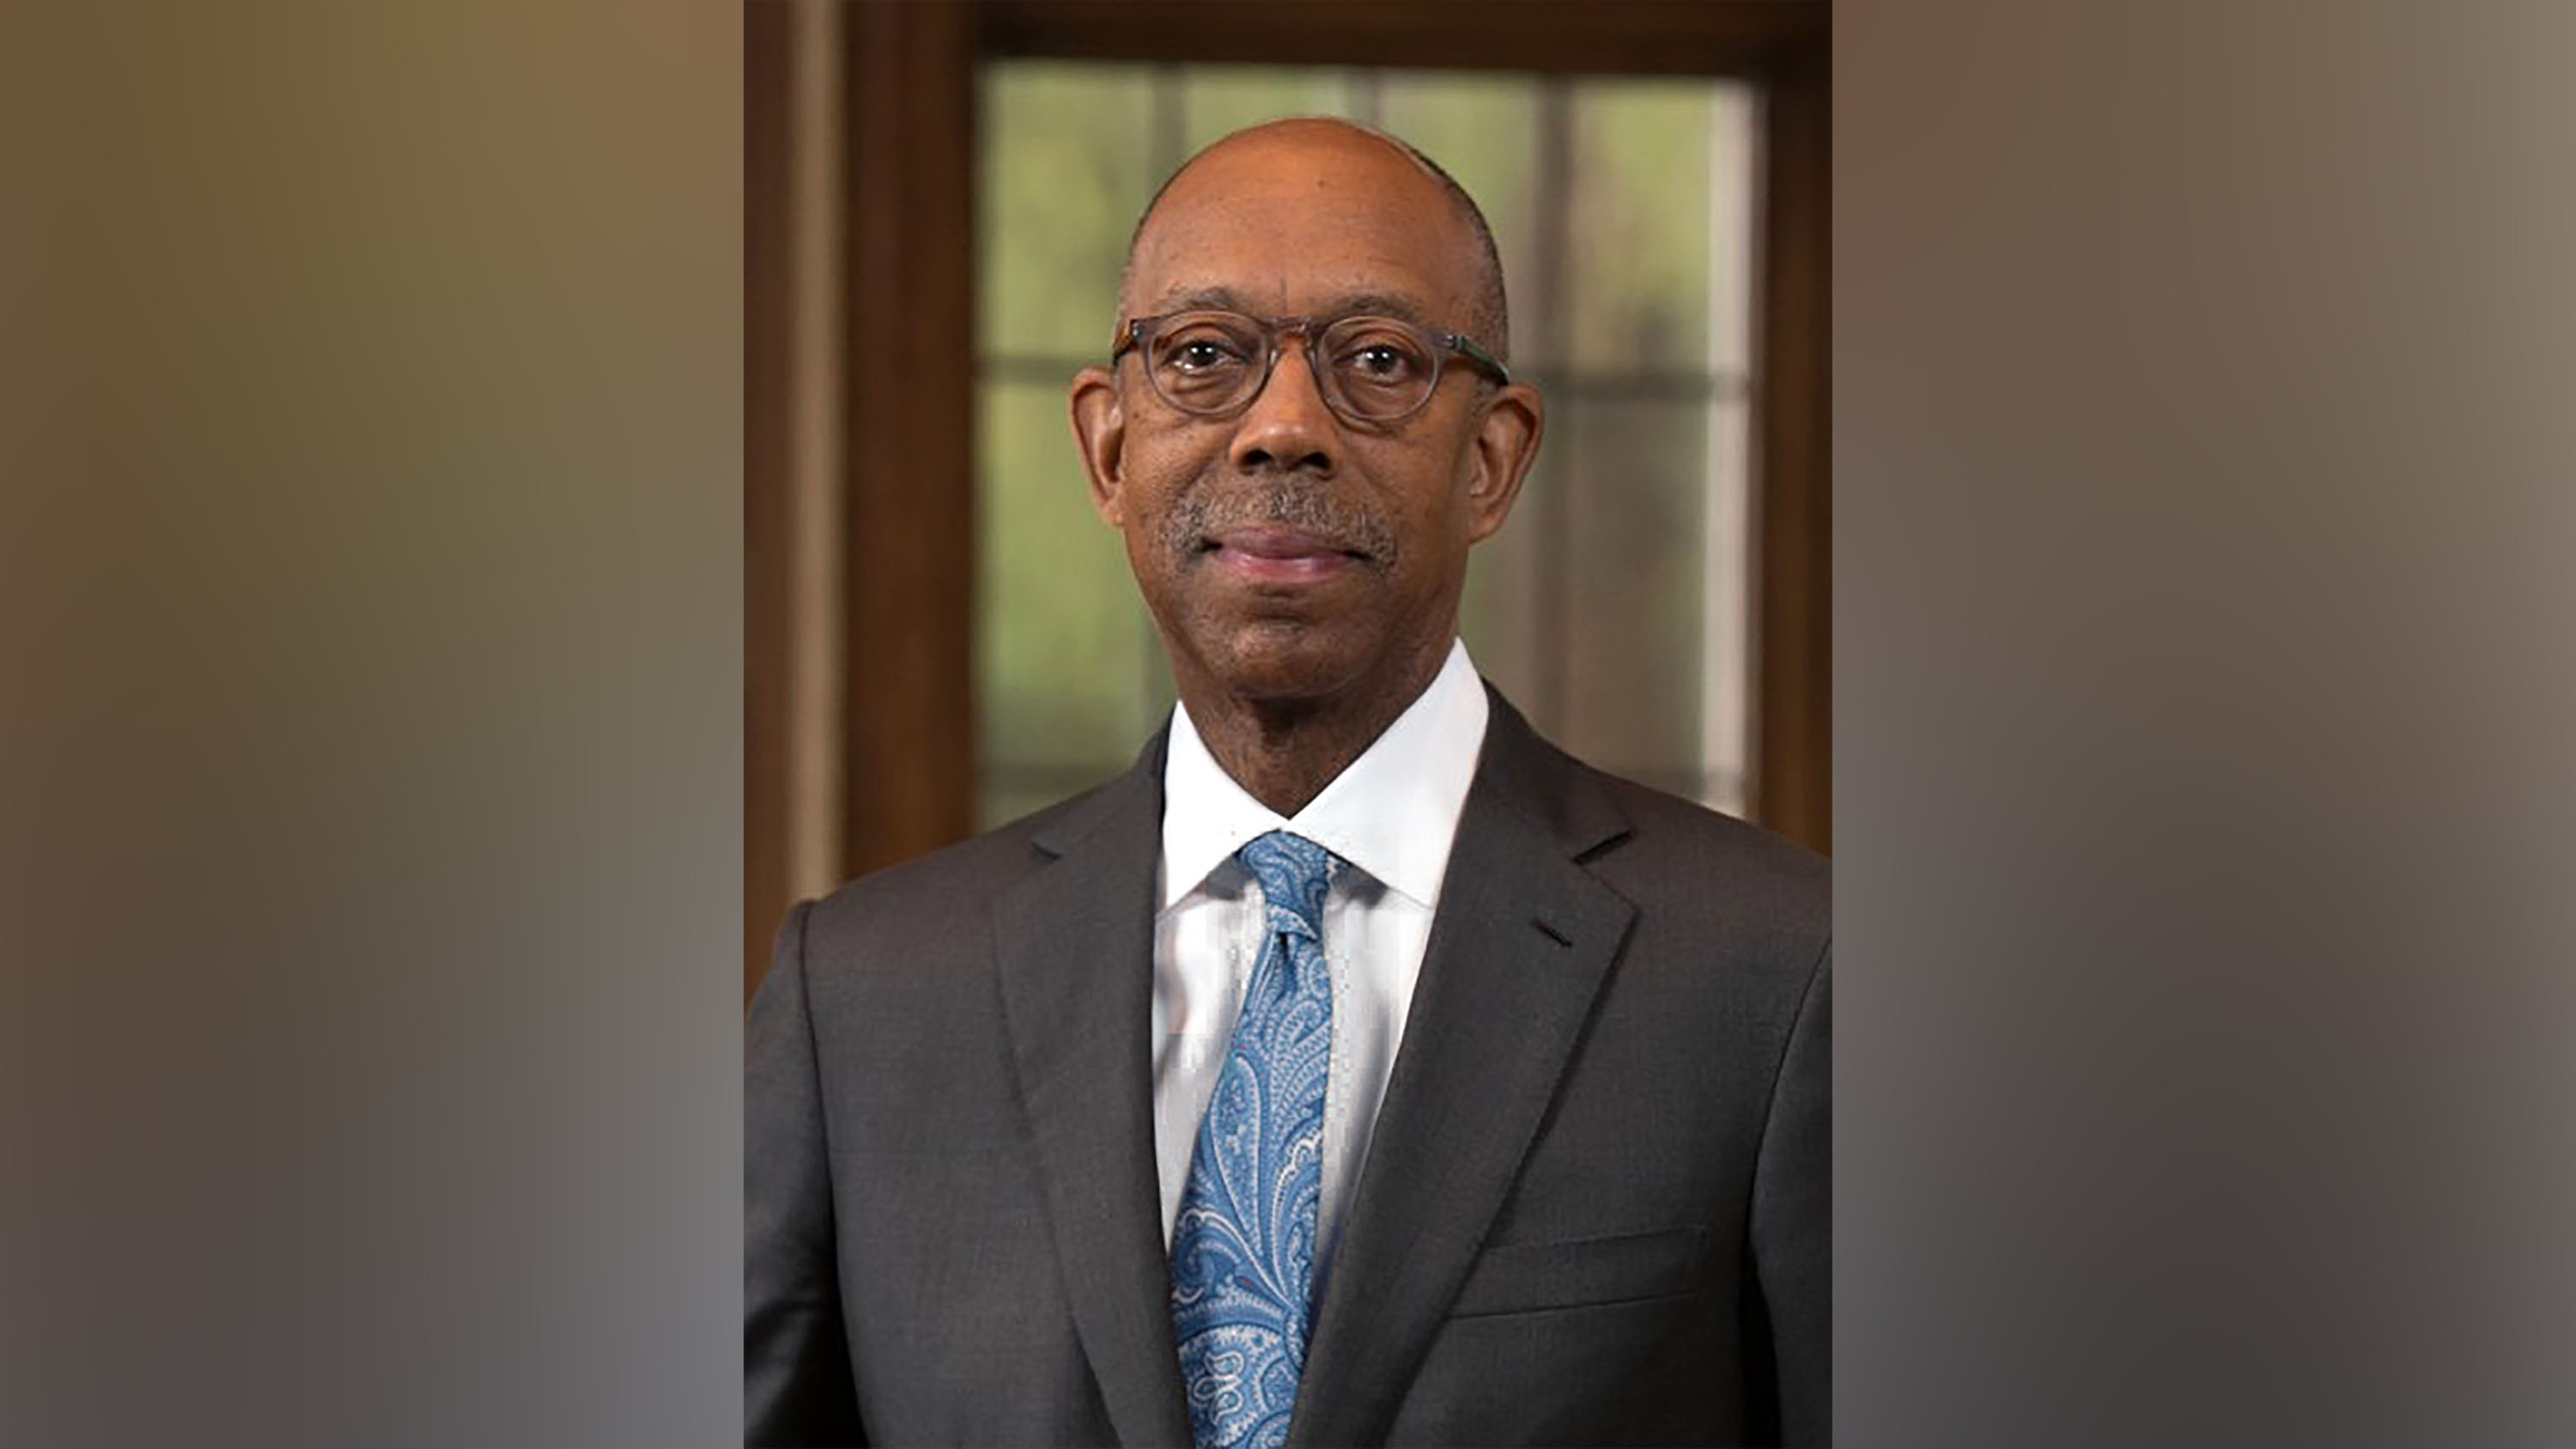 The University of California announced its first Black president